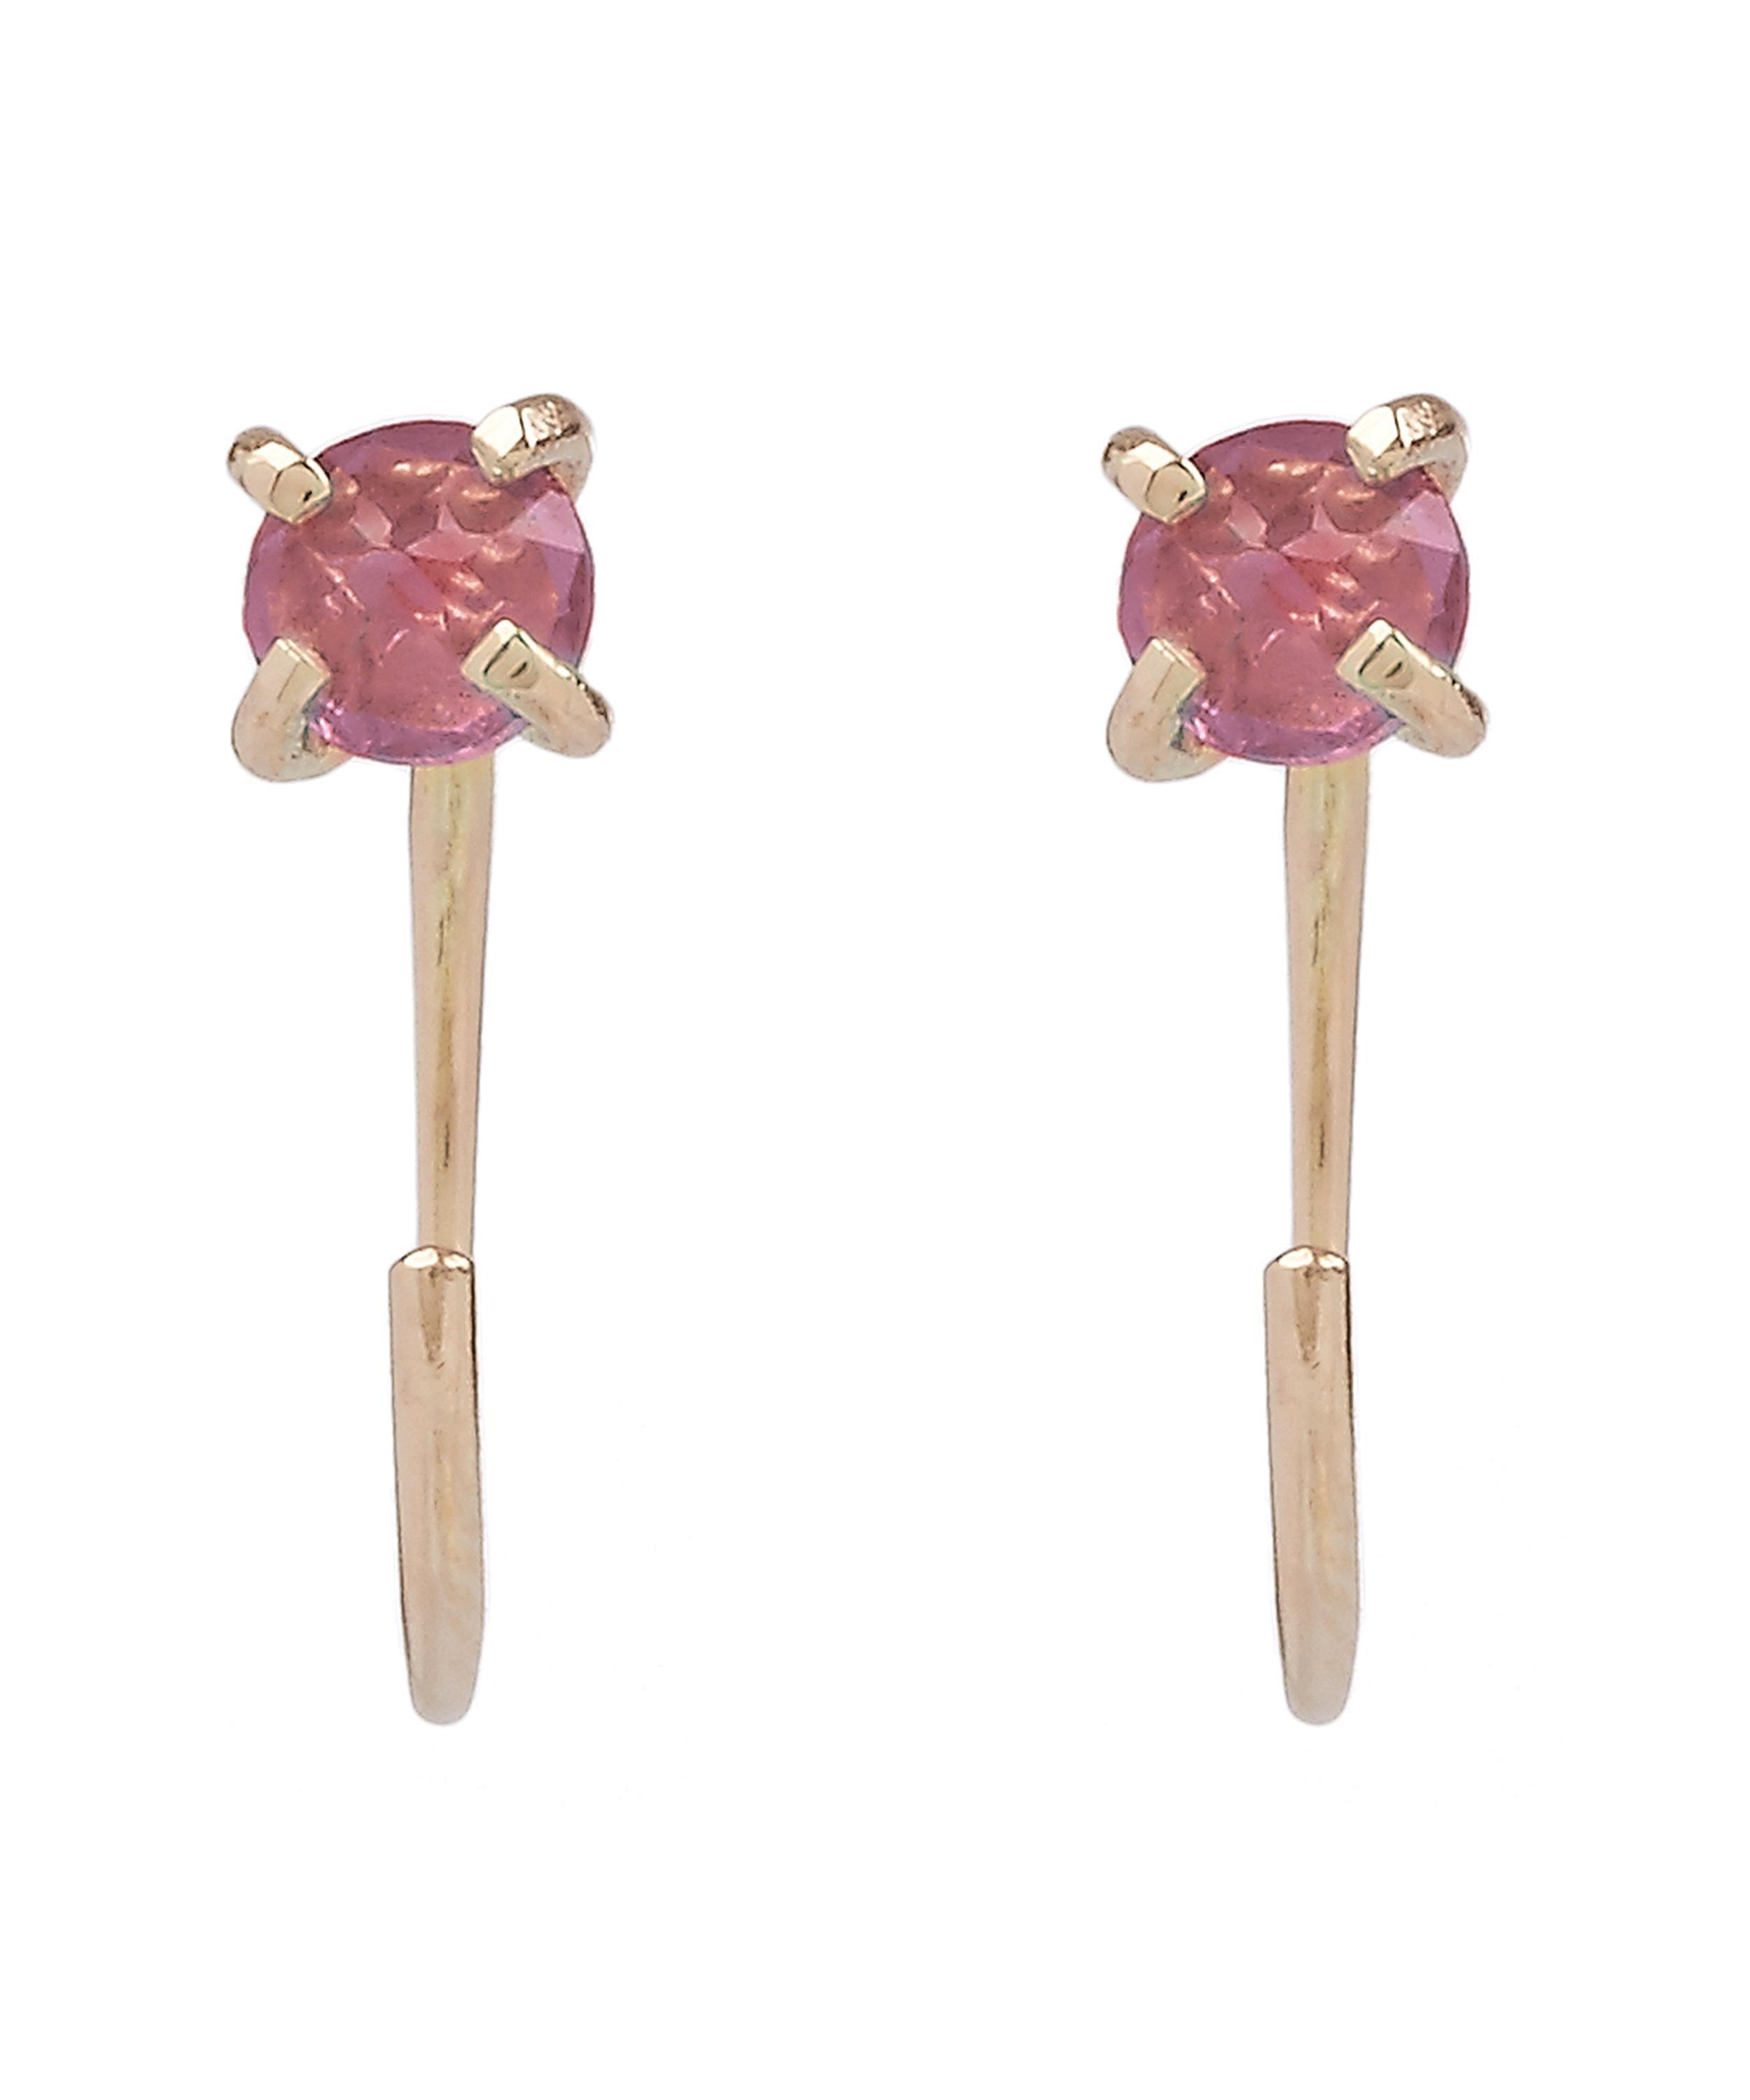 n gold white garnet rhodolite earrings